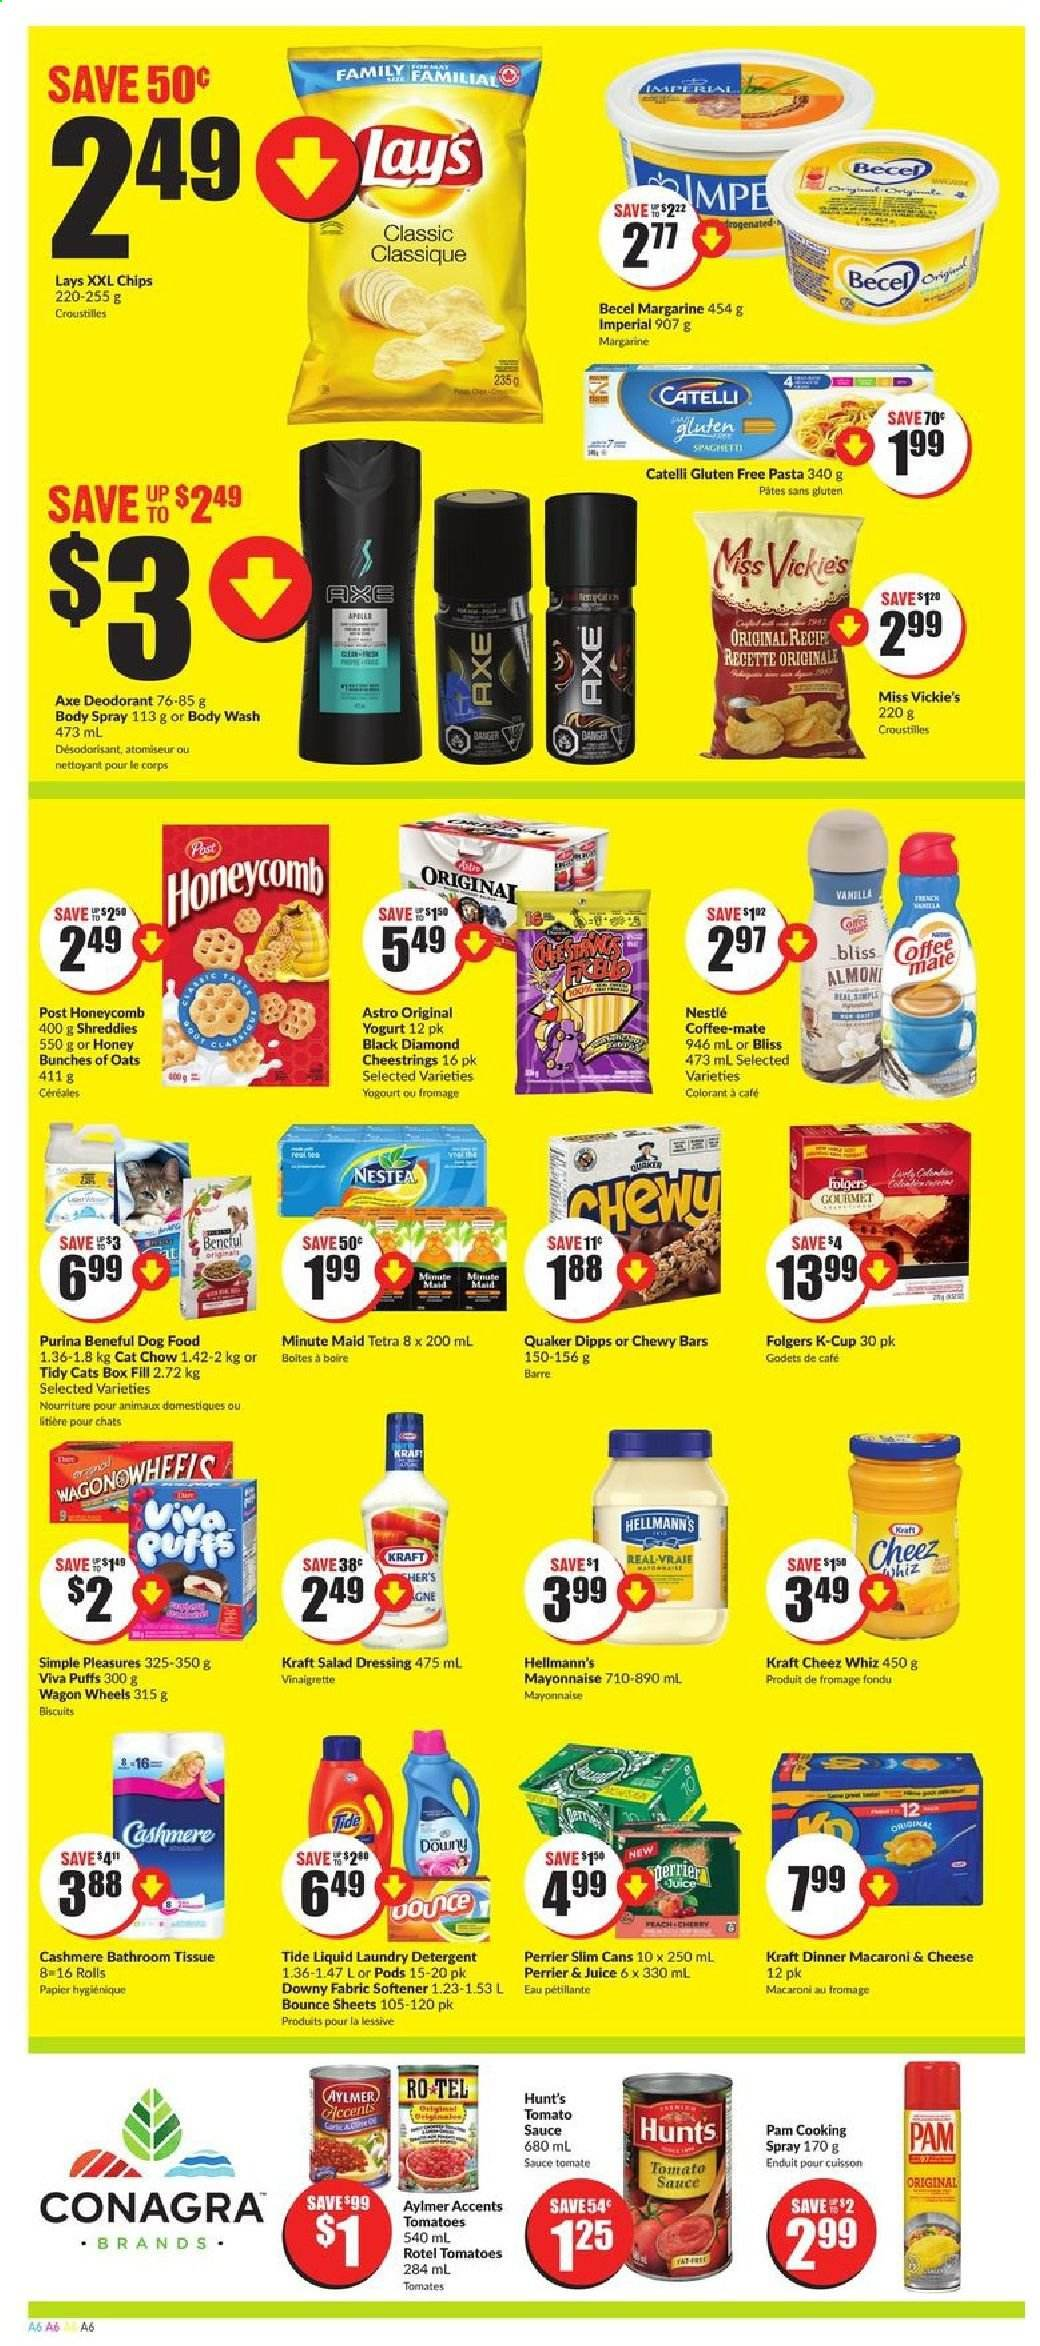 FreshCo. Flyer  - February 27, 2020 - March 04, 2020. Page 6.